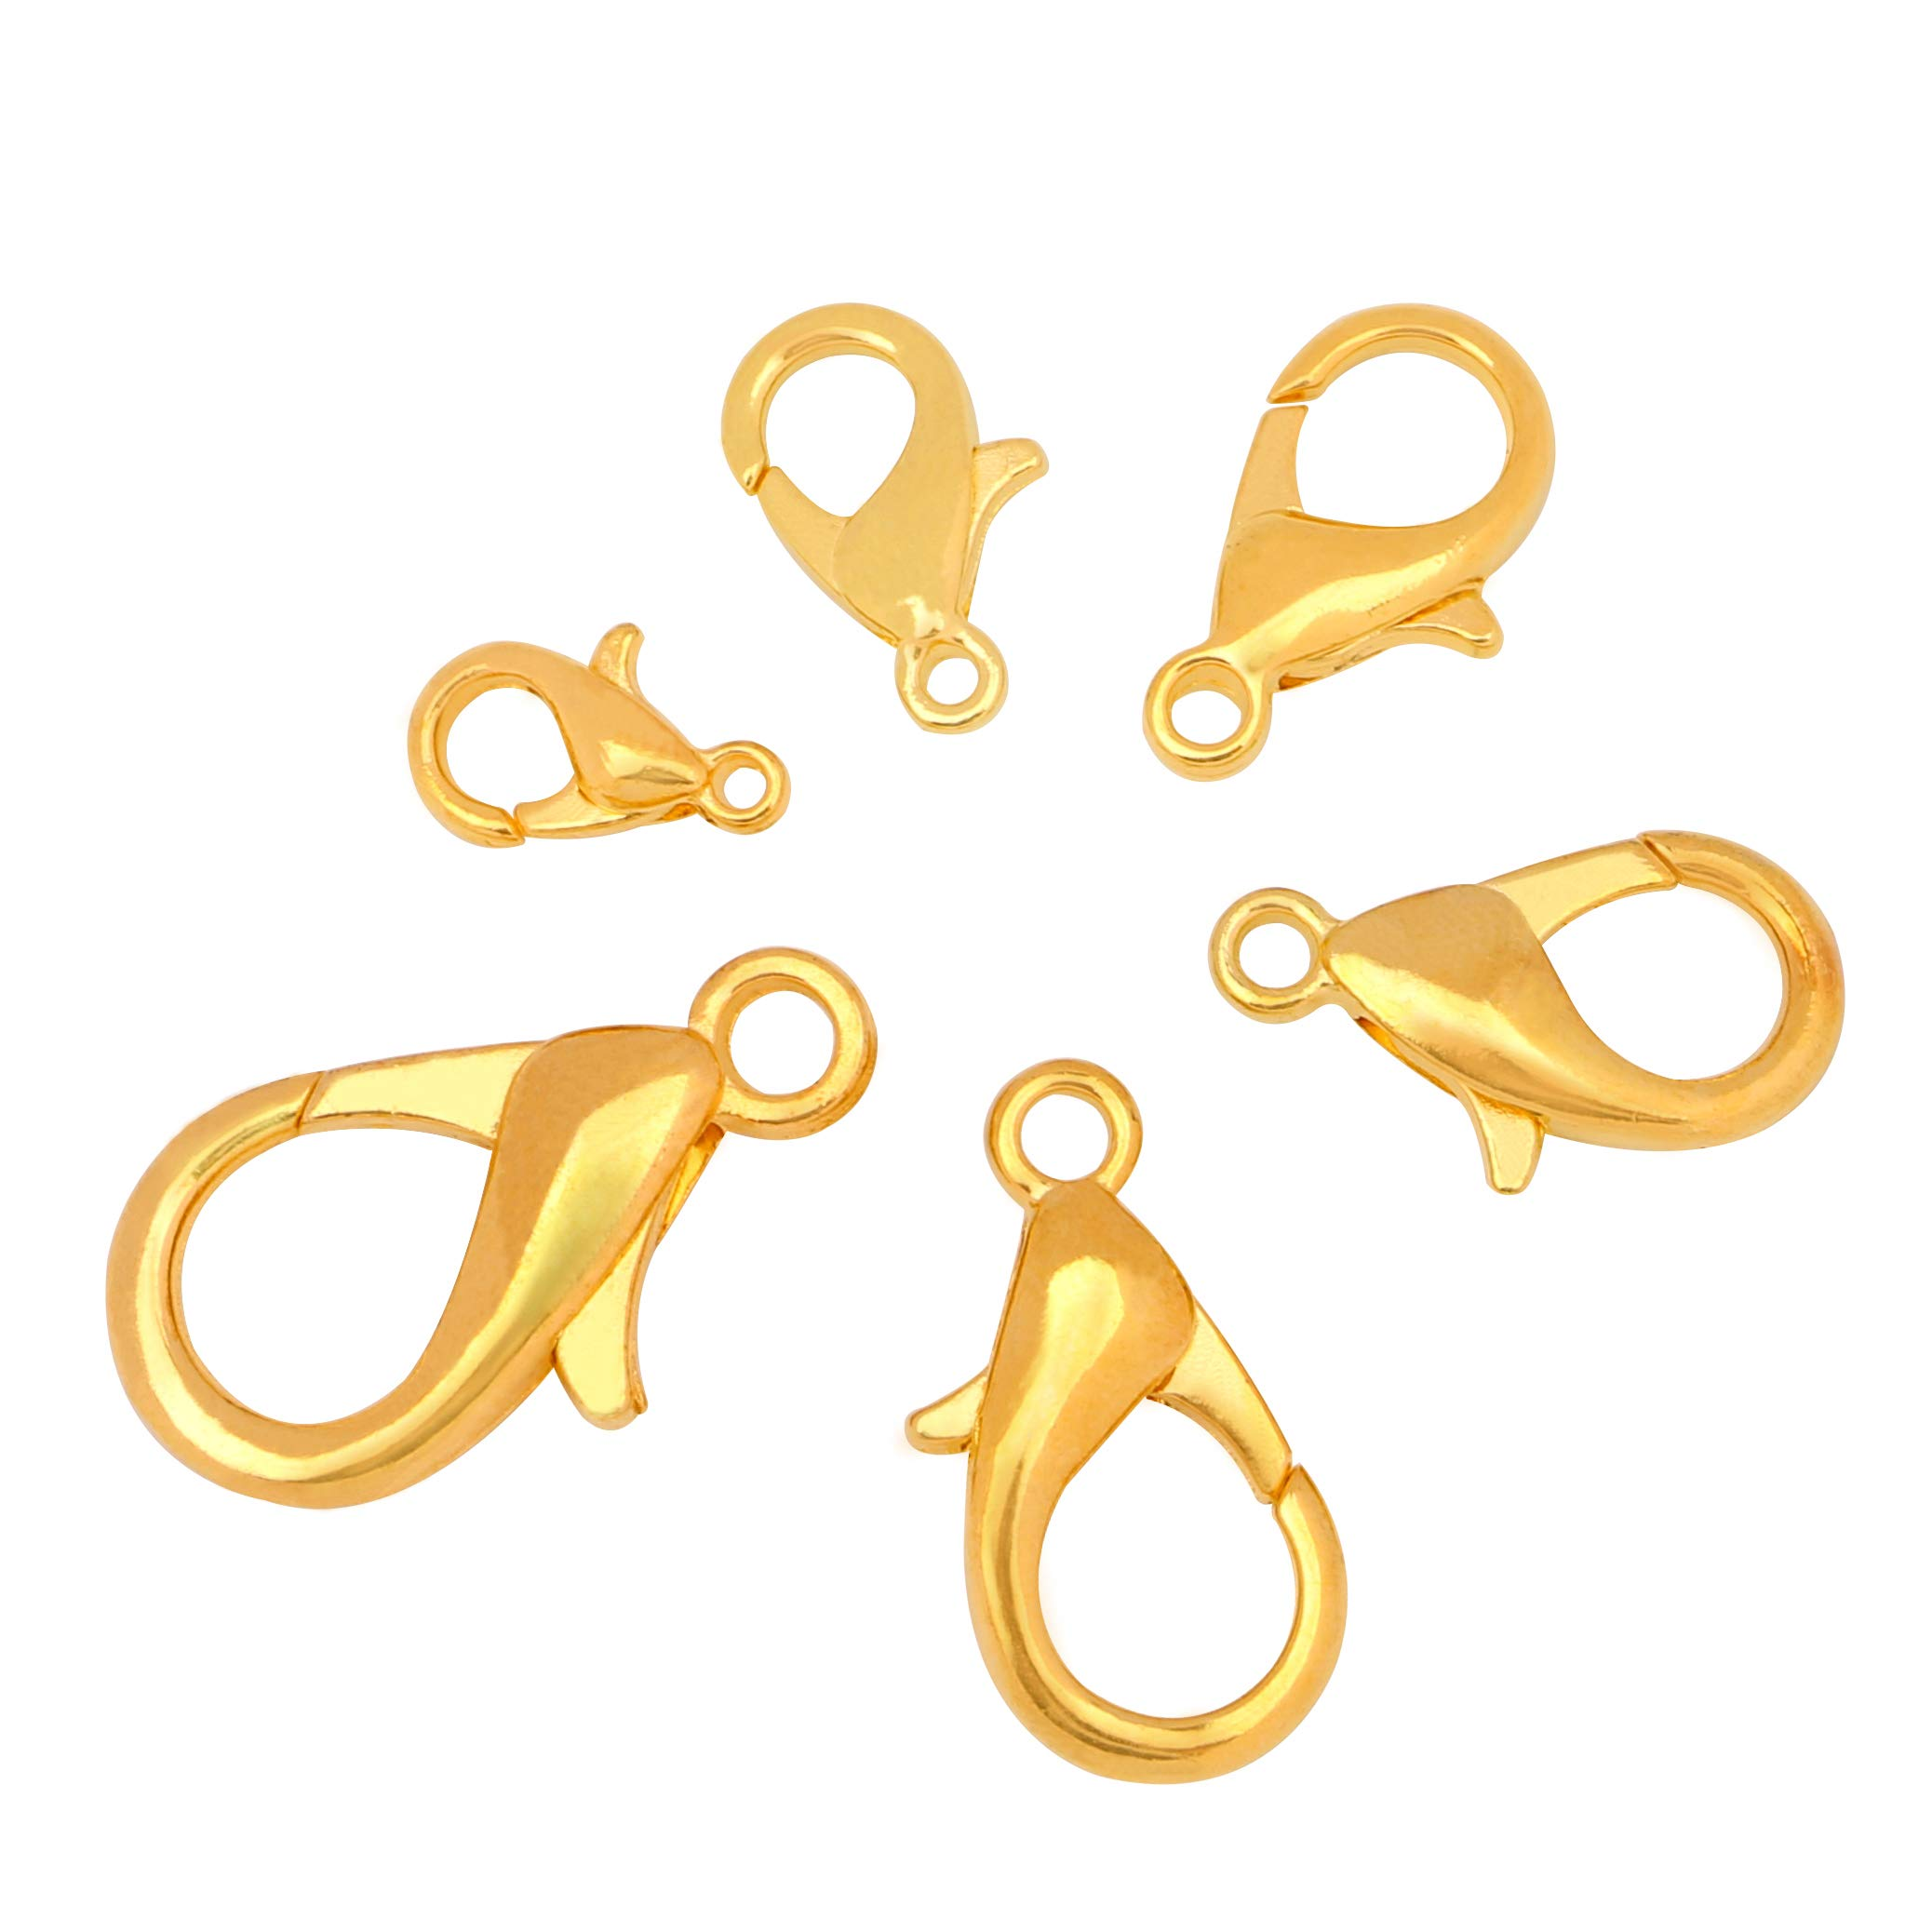 Lobster Clasps, sdoot 180 Pcs Gold Plated Jewelry Lobster Claw Clasps Findings 6 Sizes